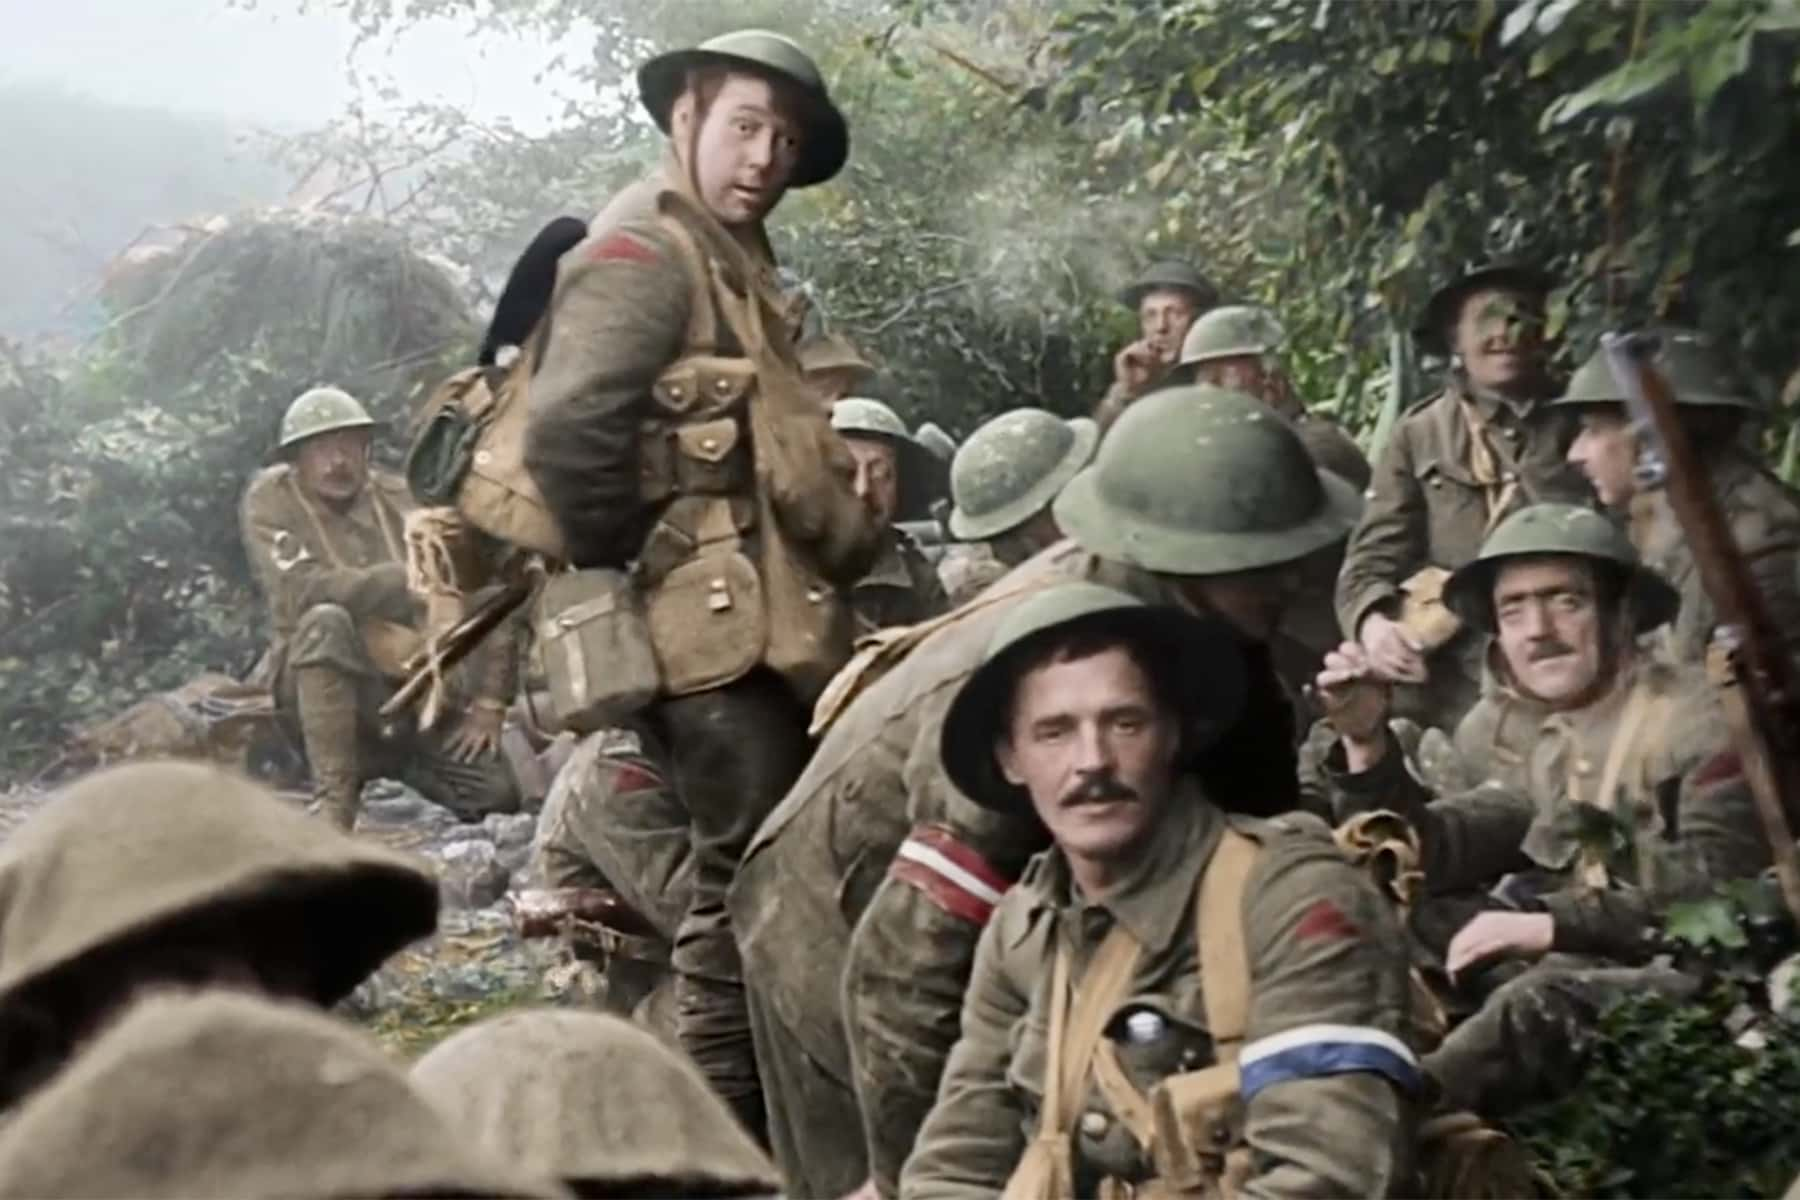 Restored Trench Warfare Footage Brings Wwi Memories Back